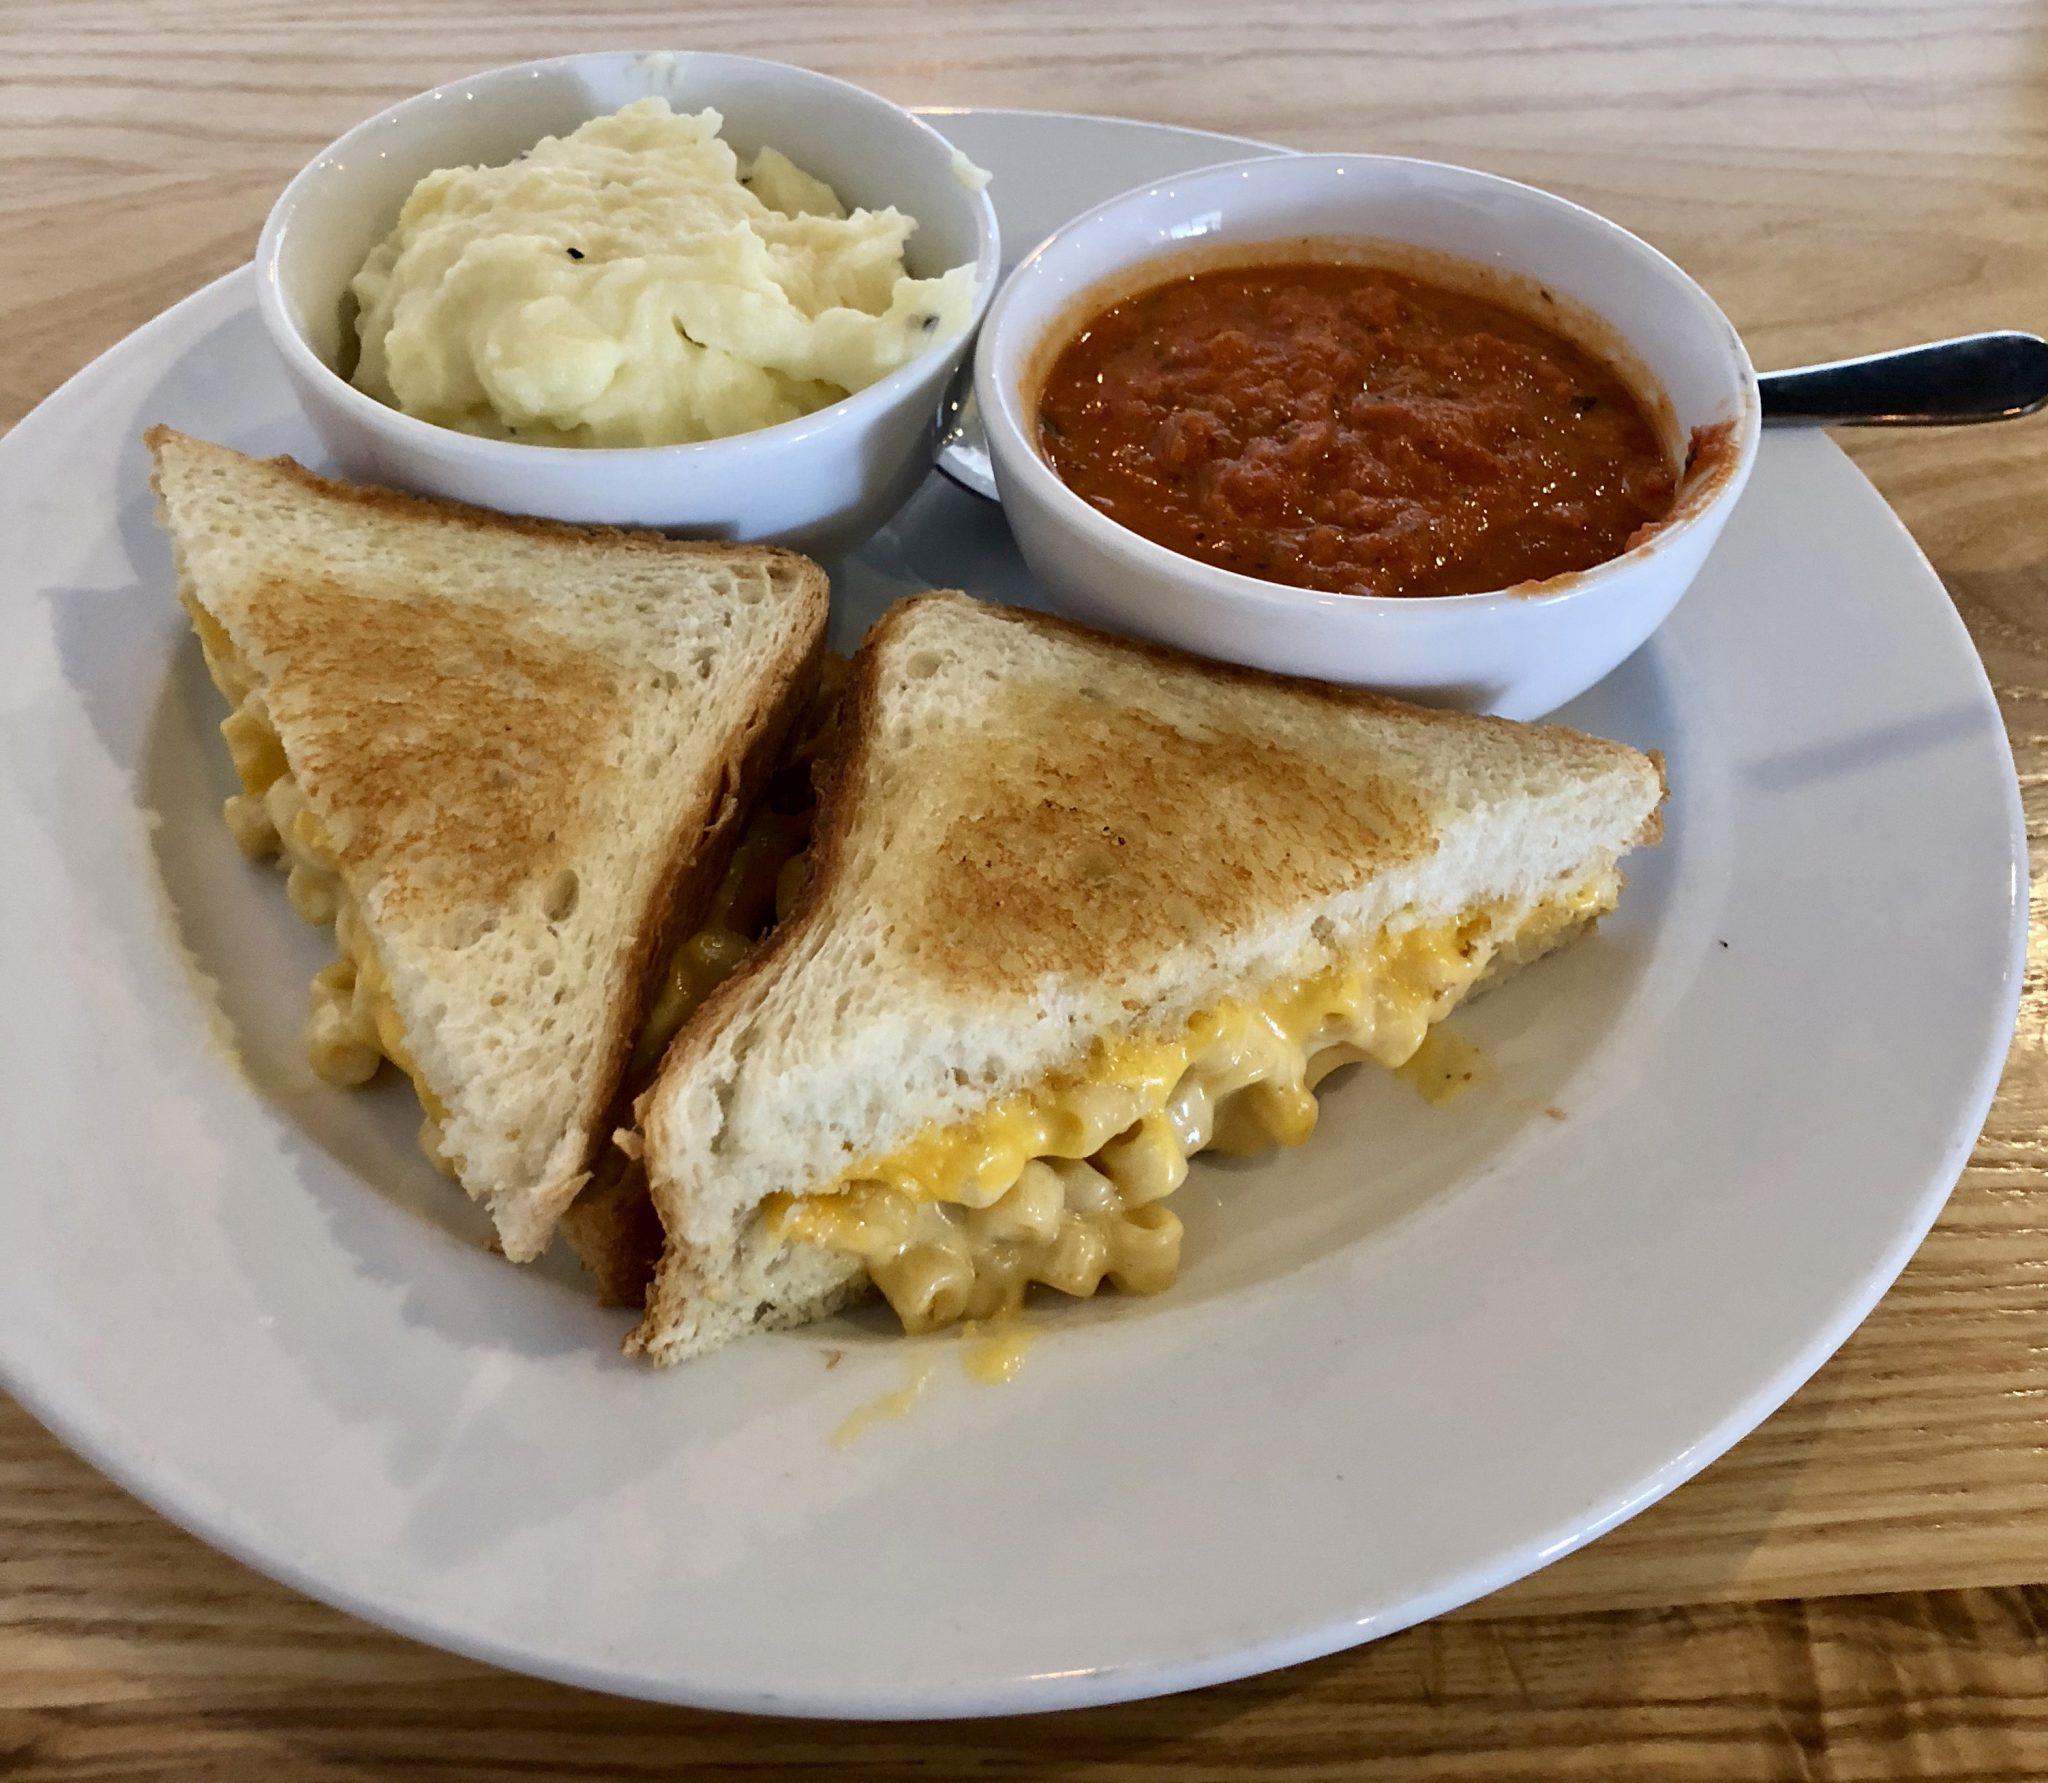 Mac and cheese sandwich from Comfort - A Southern Bistro